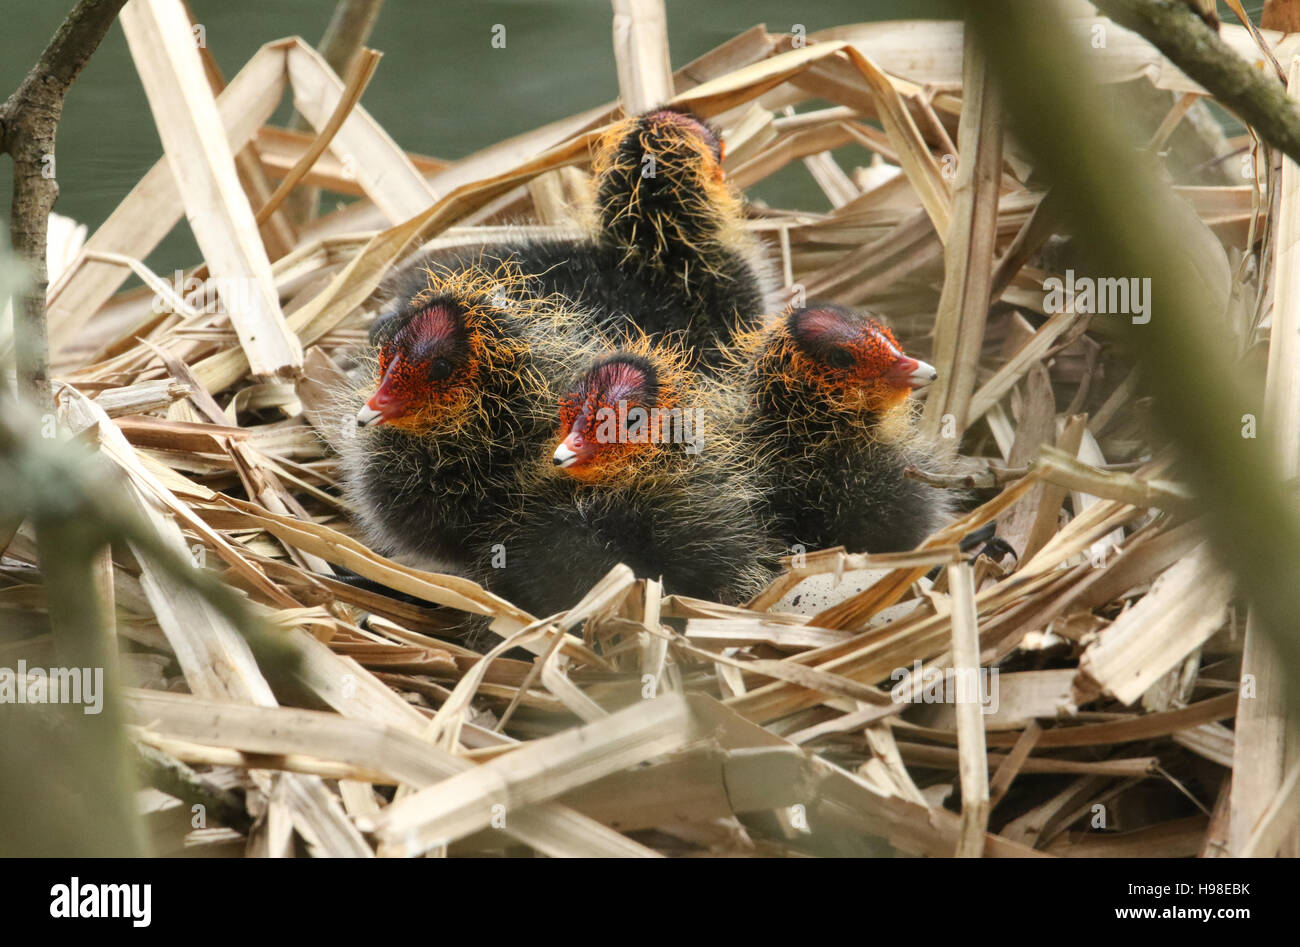 Baby Coots (Fulica atra) on their nest waiting for the parents to return with food. - Stock Image